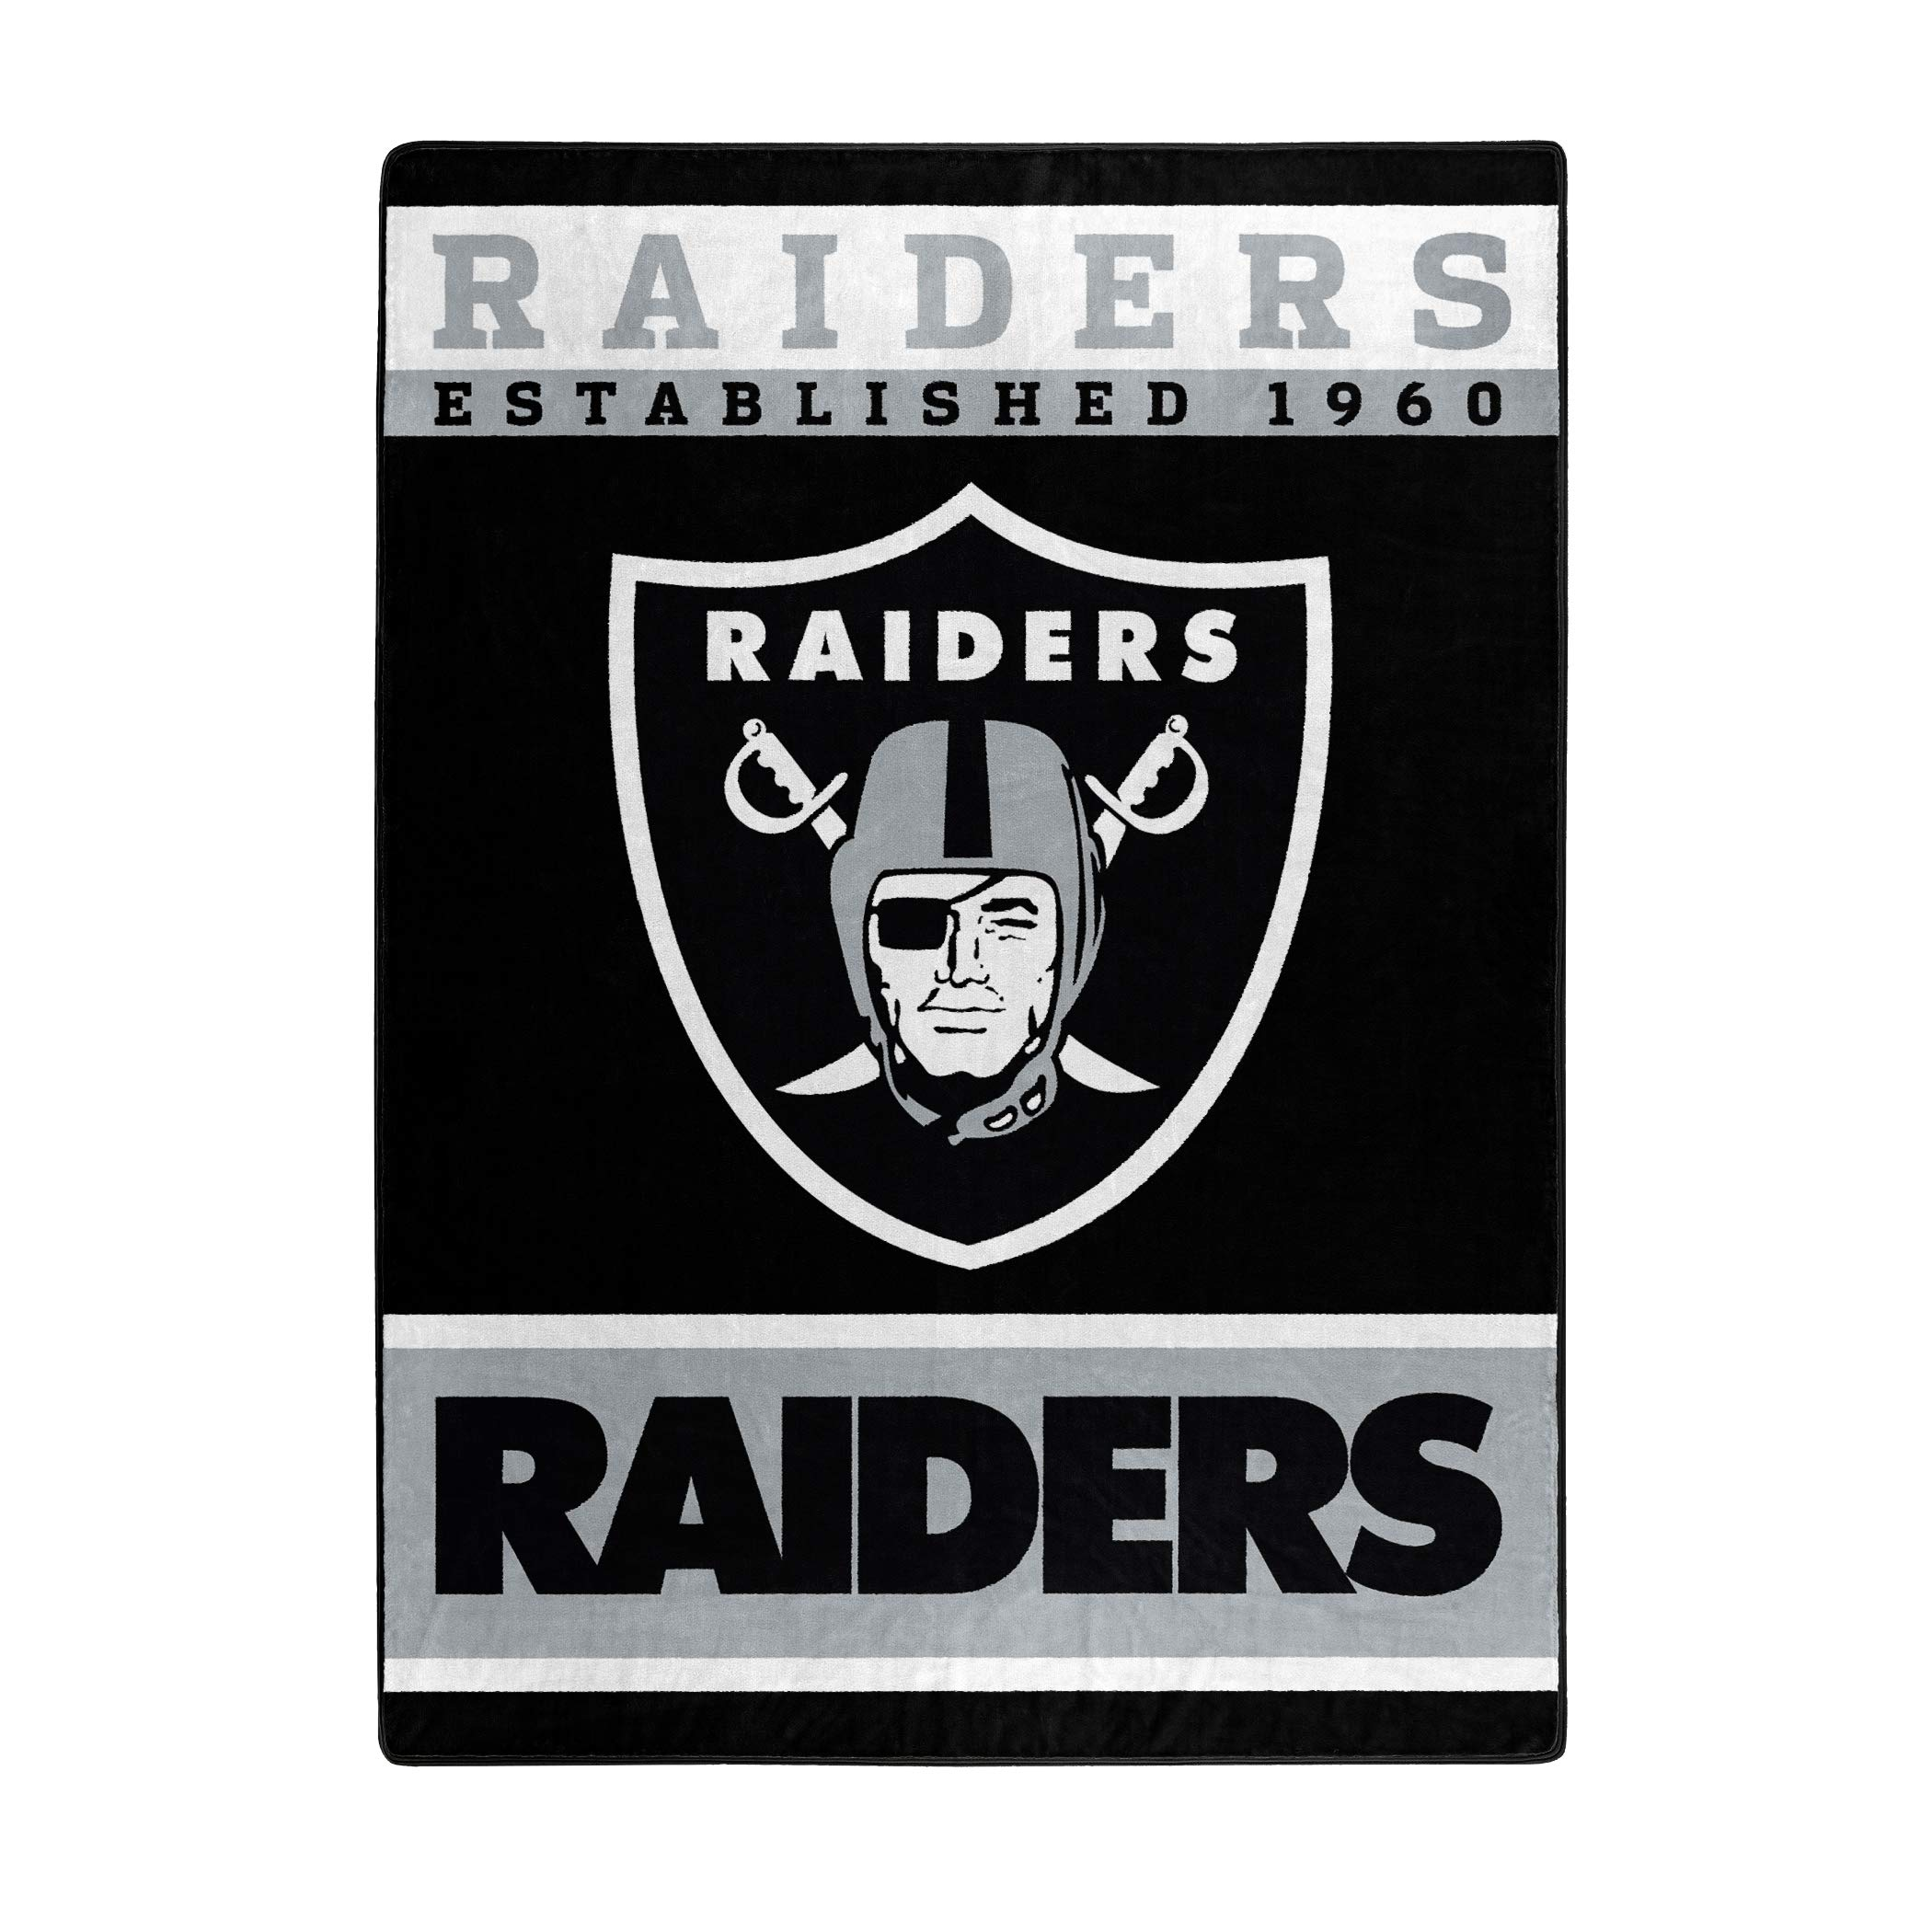 The Northwest Company Officially Licensed NFL Oakland Raiders 12th Man Plush Raschel Throw Blanket, 60'' x 80'', Multi Color by The Northwest Company